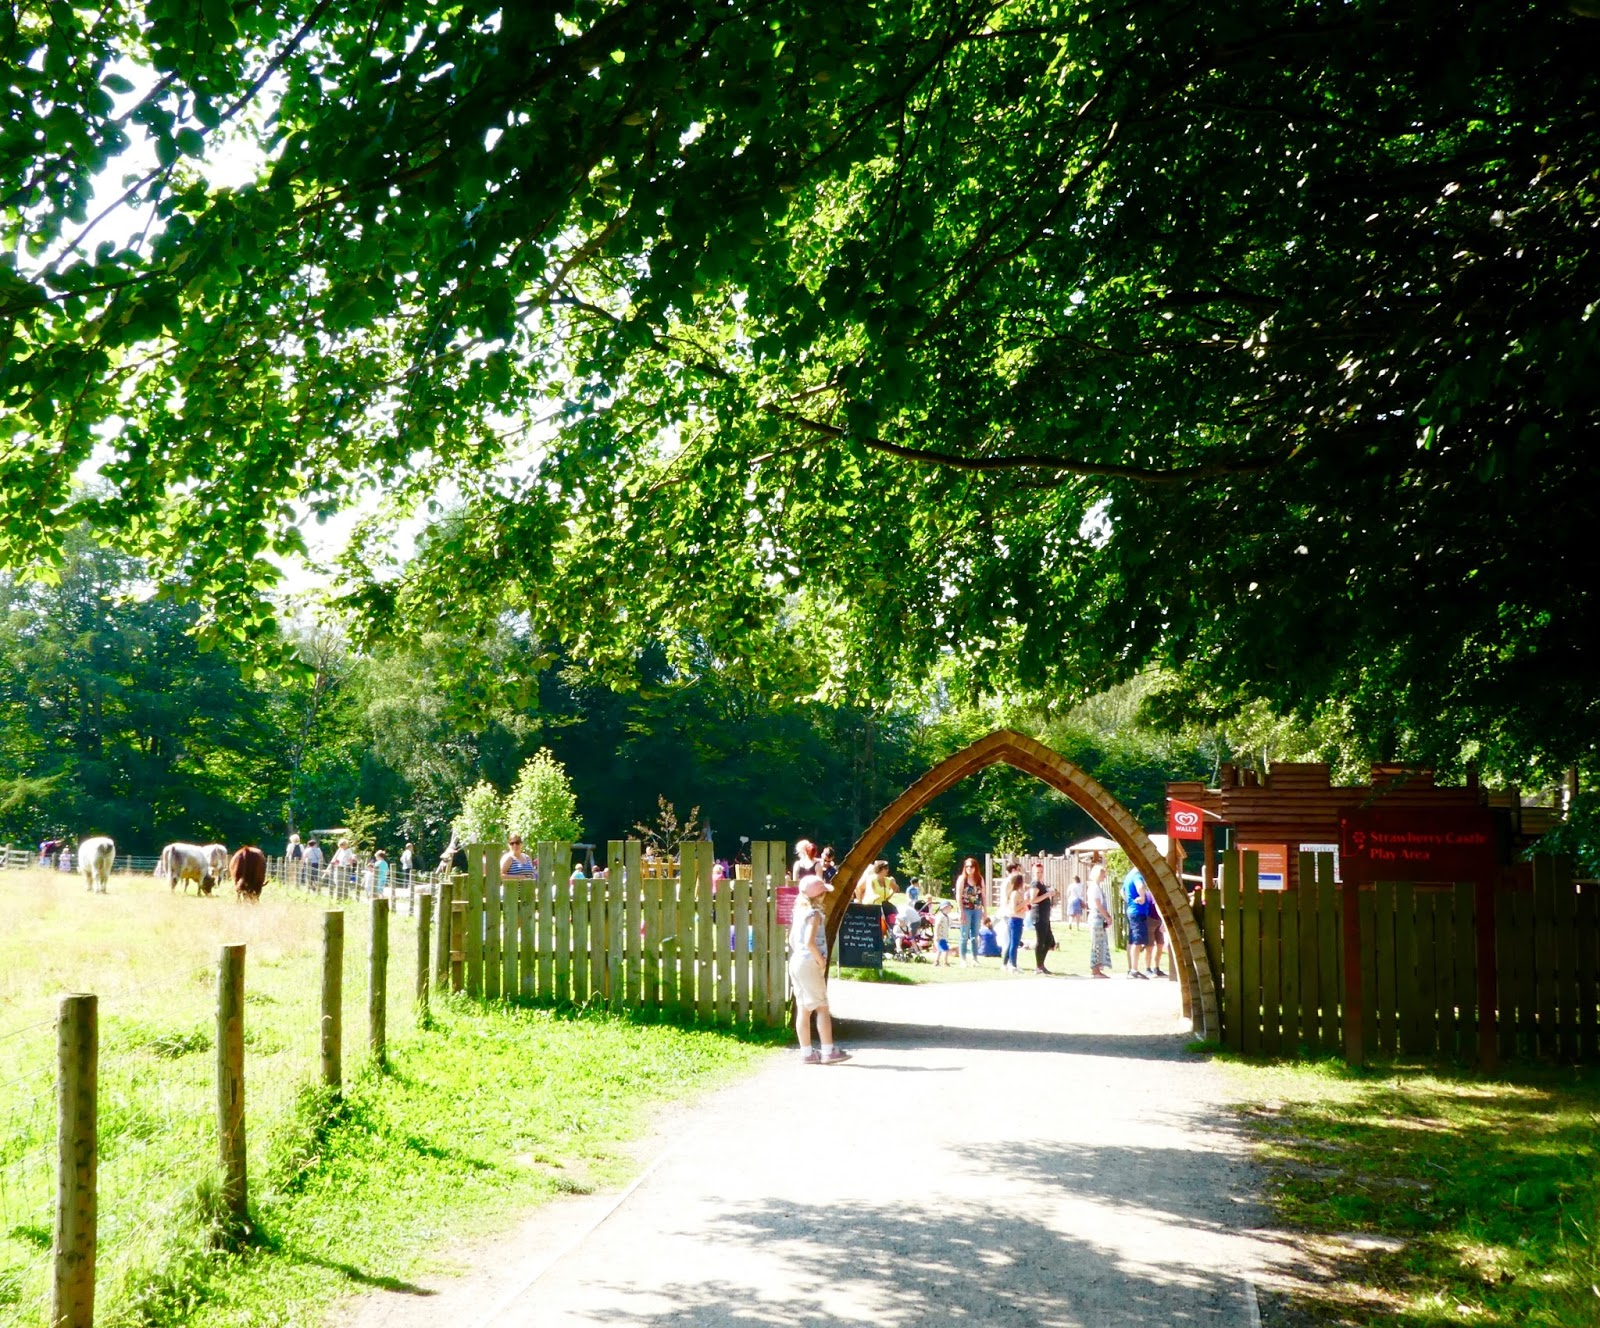 Gibside - A North East National Trust Property that's ideal for Picnics, Adventure Playground fun and beautiful gardens - entrance to Strawberry Castle play area